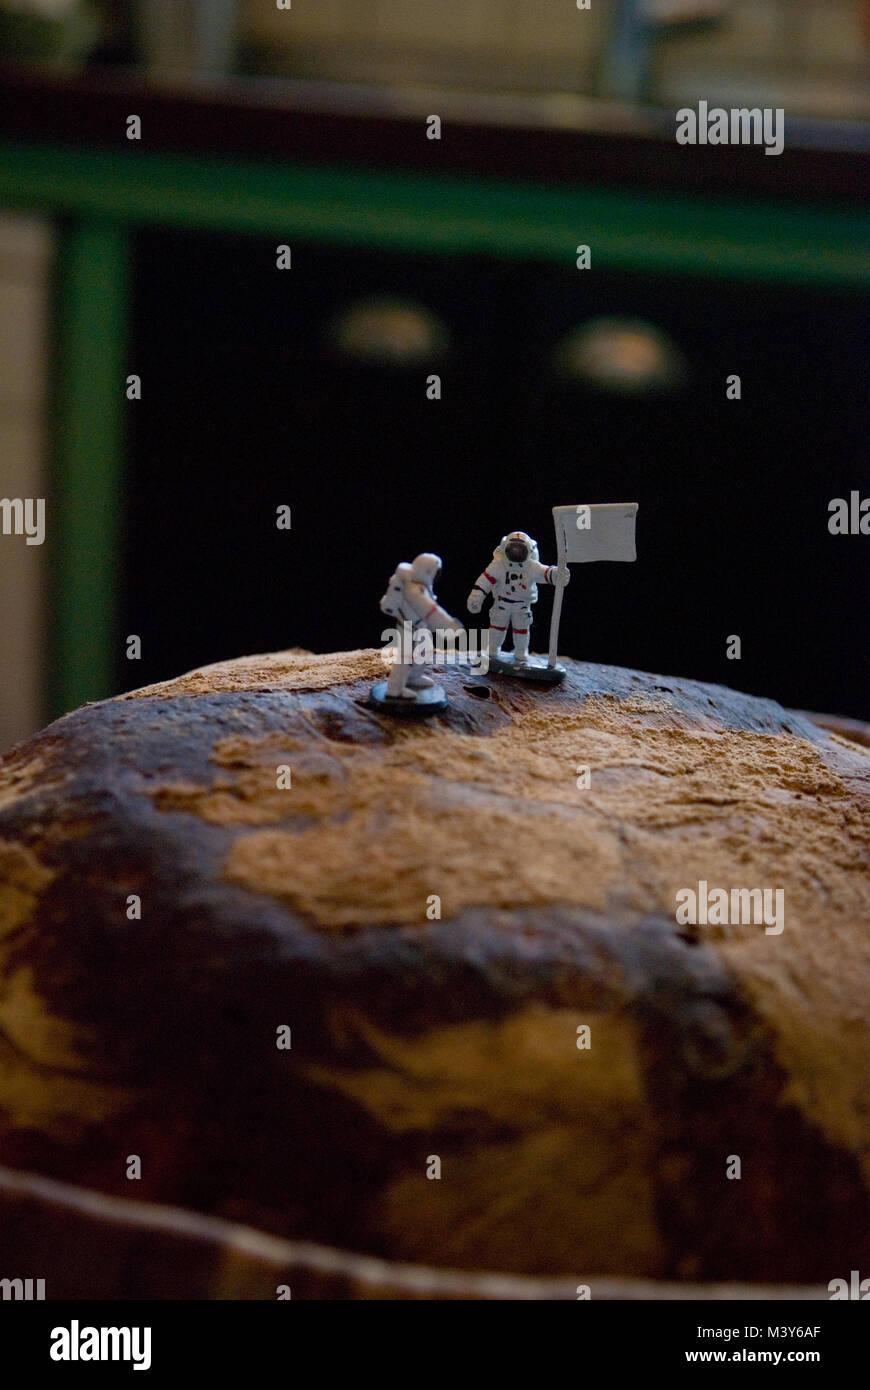 two toy astronaut figures, one with a flag, stand on top of a freshly baked sourdough loaf resembling a moon landing, - Stock Image